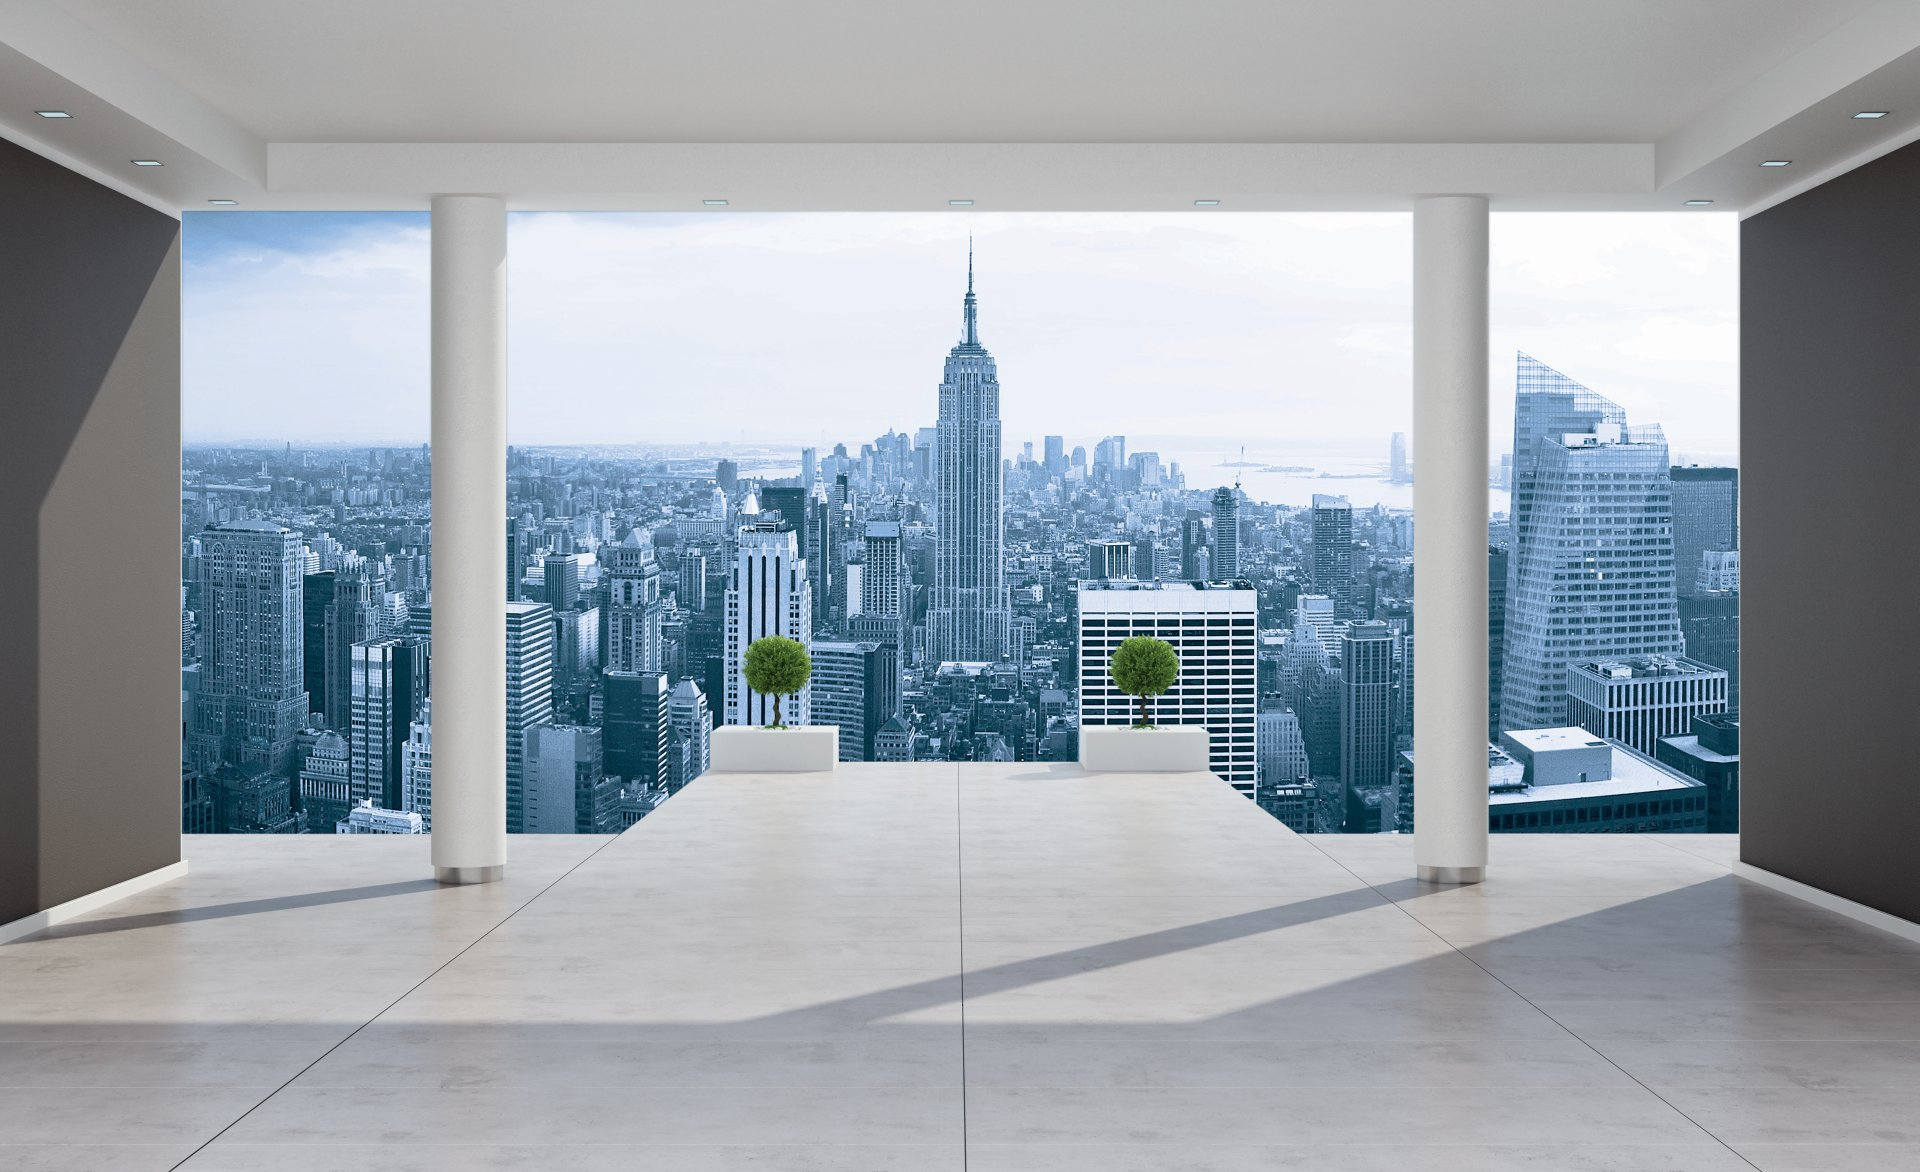 New York City Skyline Urban PHOTO WALLPAPER WALL MURAL ROOM   1323P 1920x1172